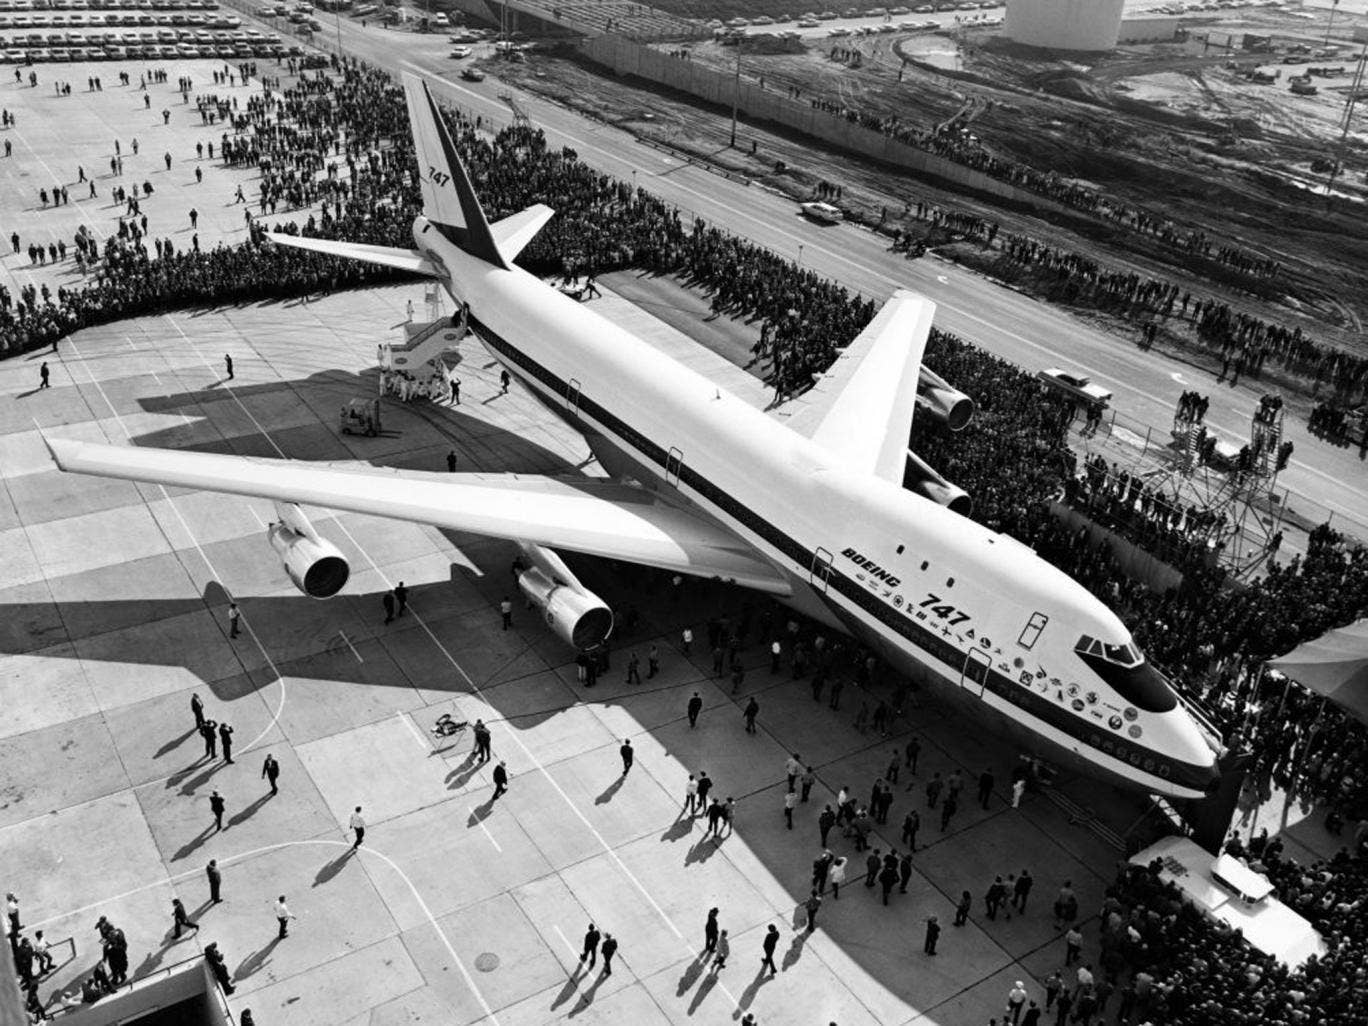 The first Boeing 747 rolls out of the Boeing plant in 1968